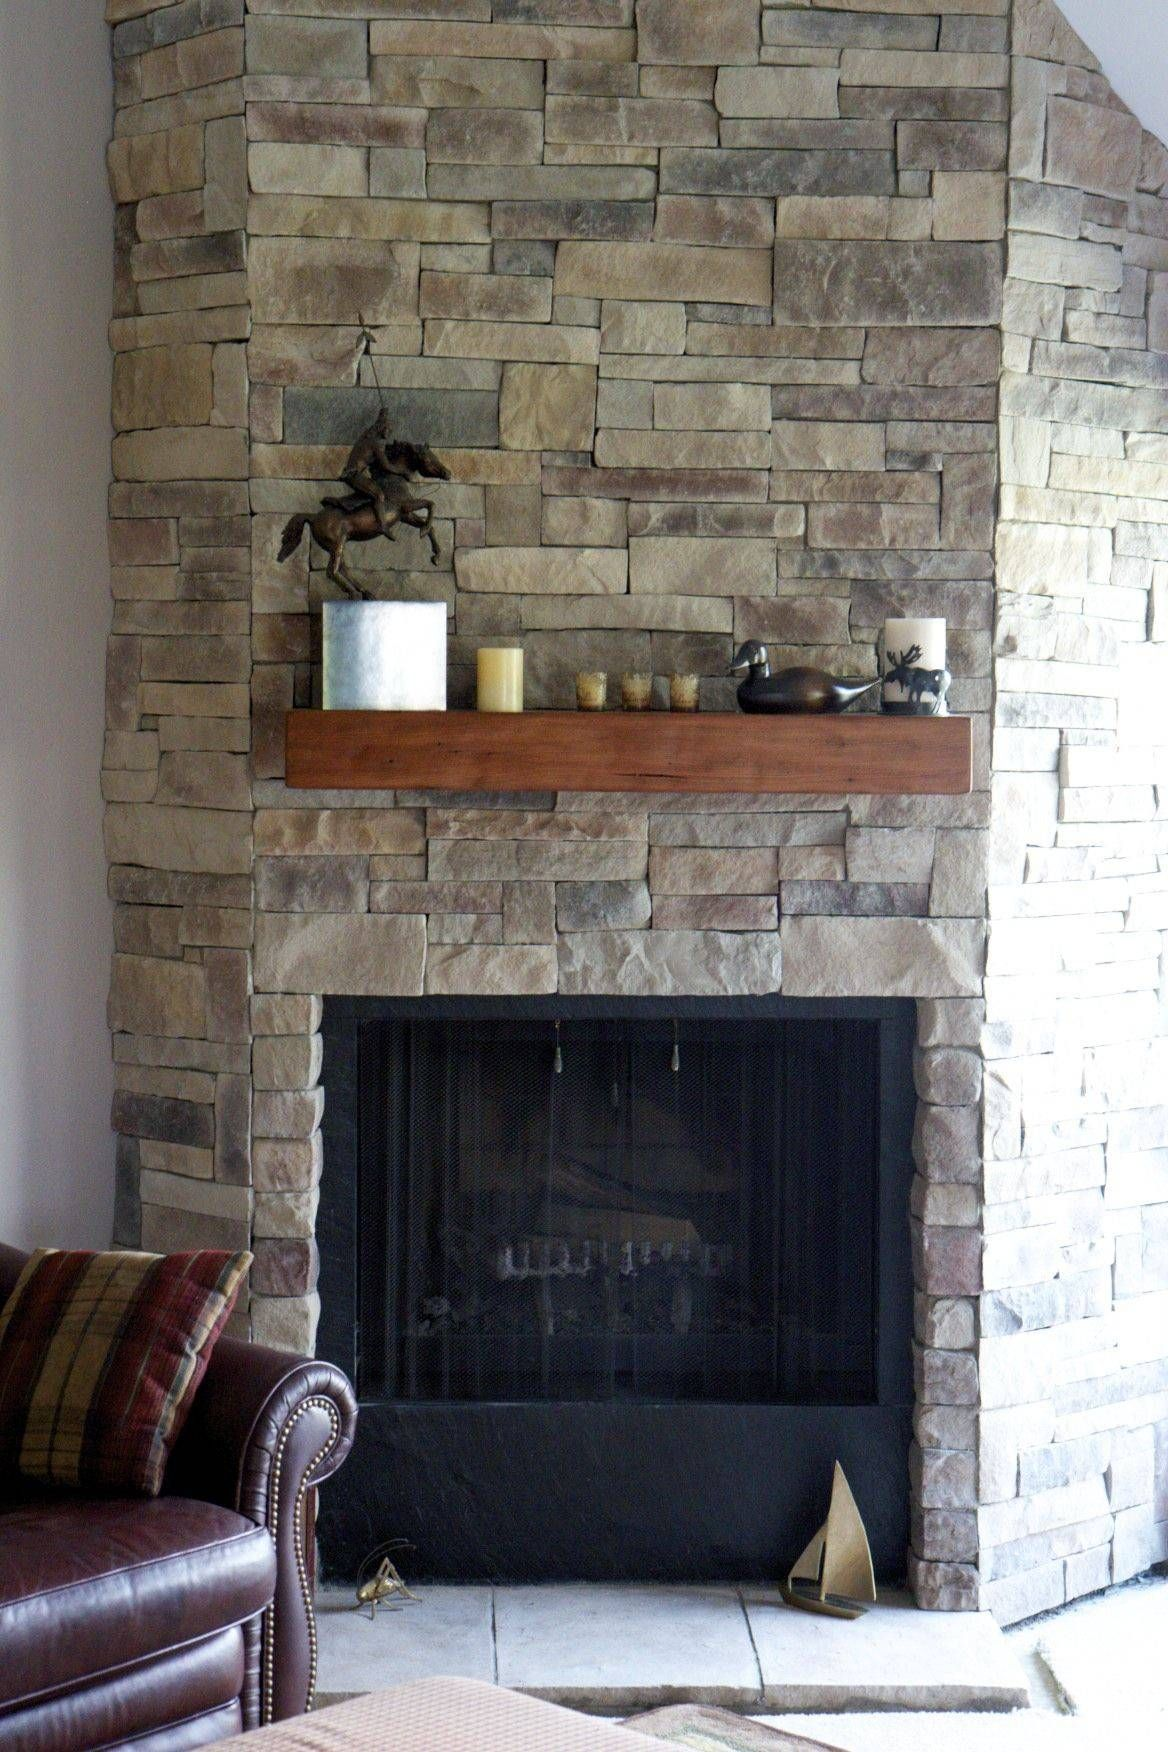 how to mount a tv above a fireplace without studs